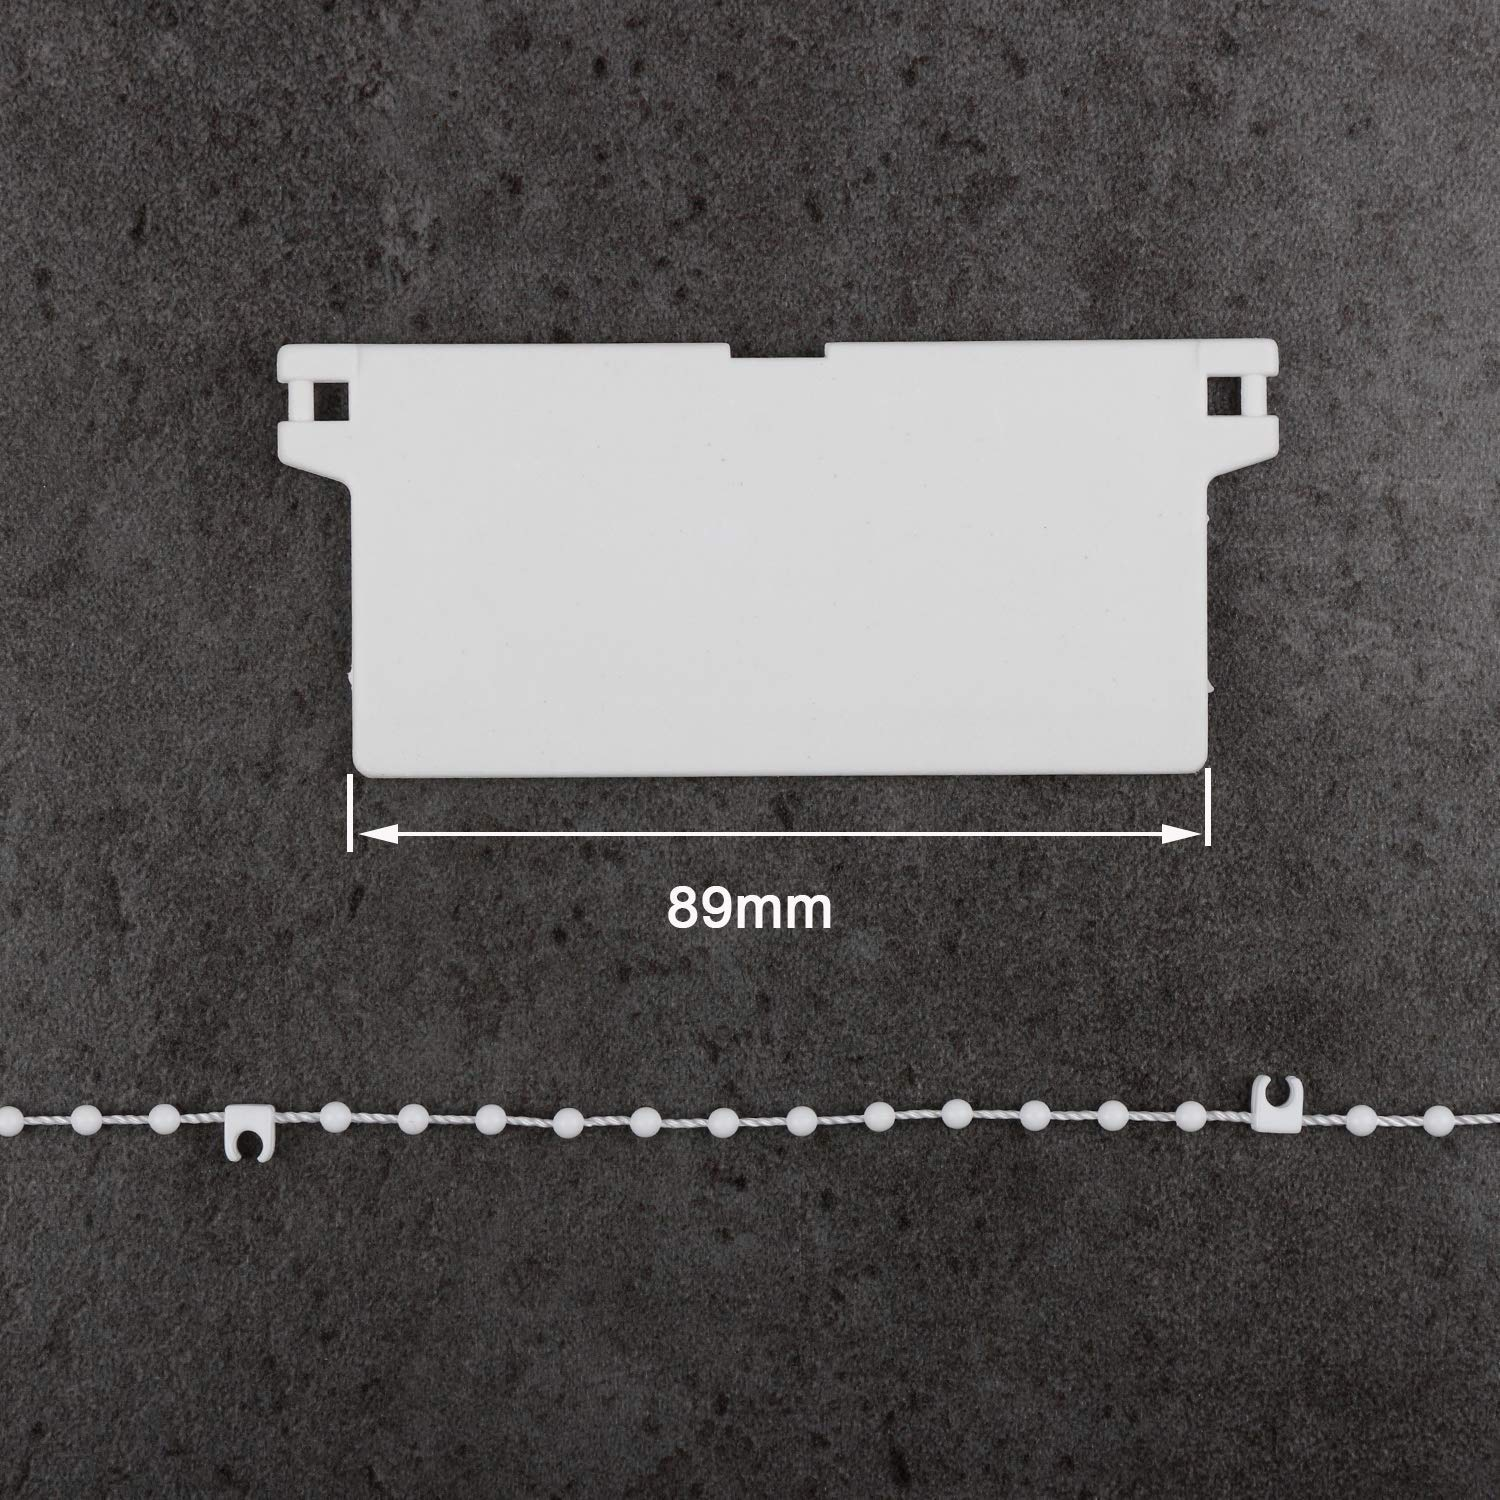 5M, 0 Clips EveryHome Vertical Blind Bottom Chain for 3.5 Inch// 89 mm Slats